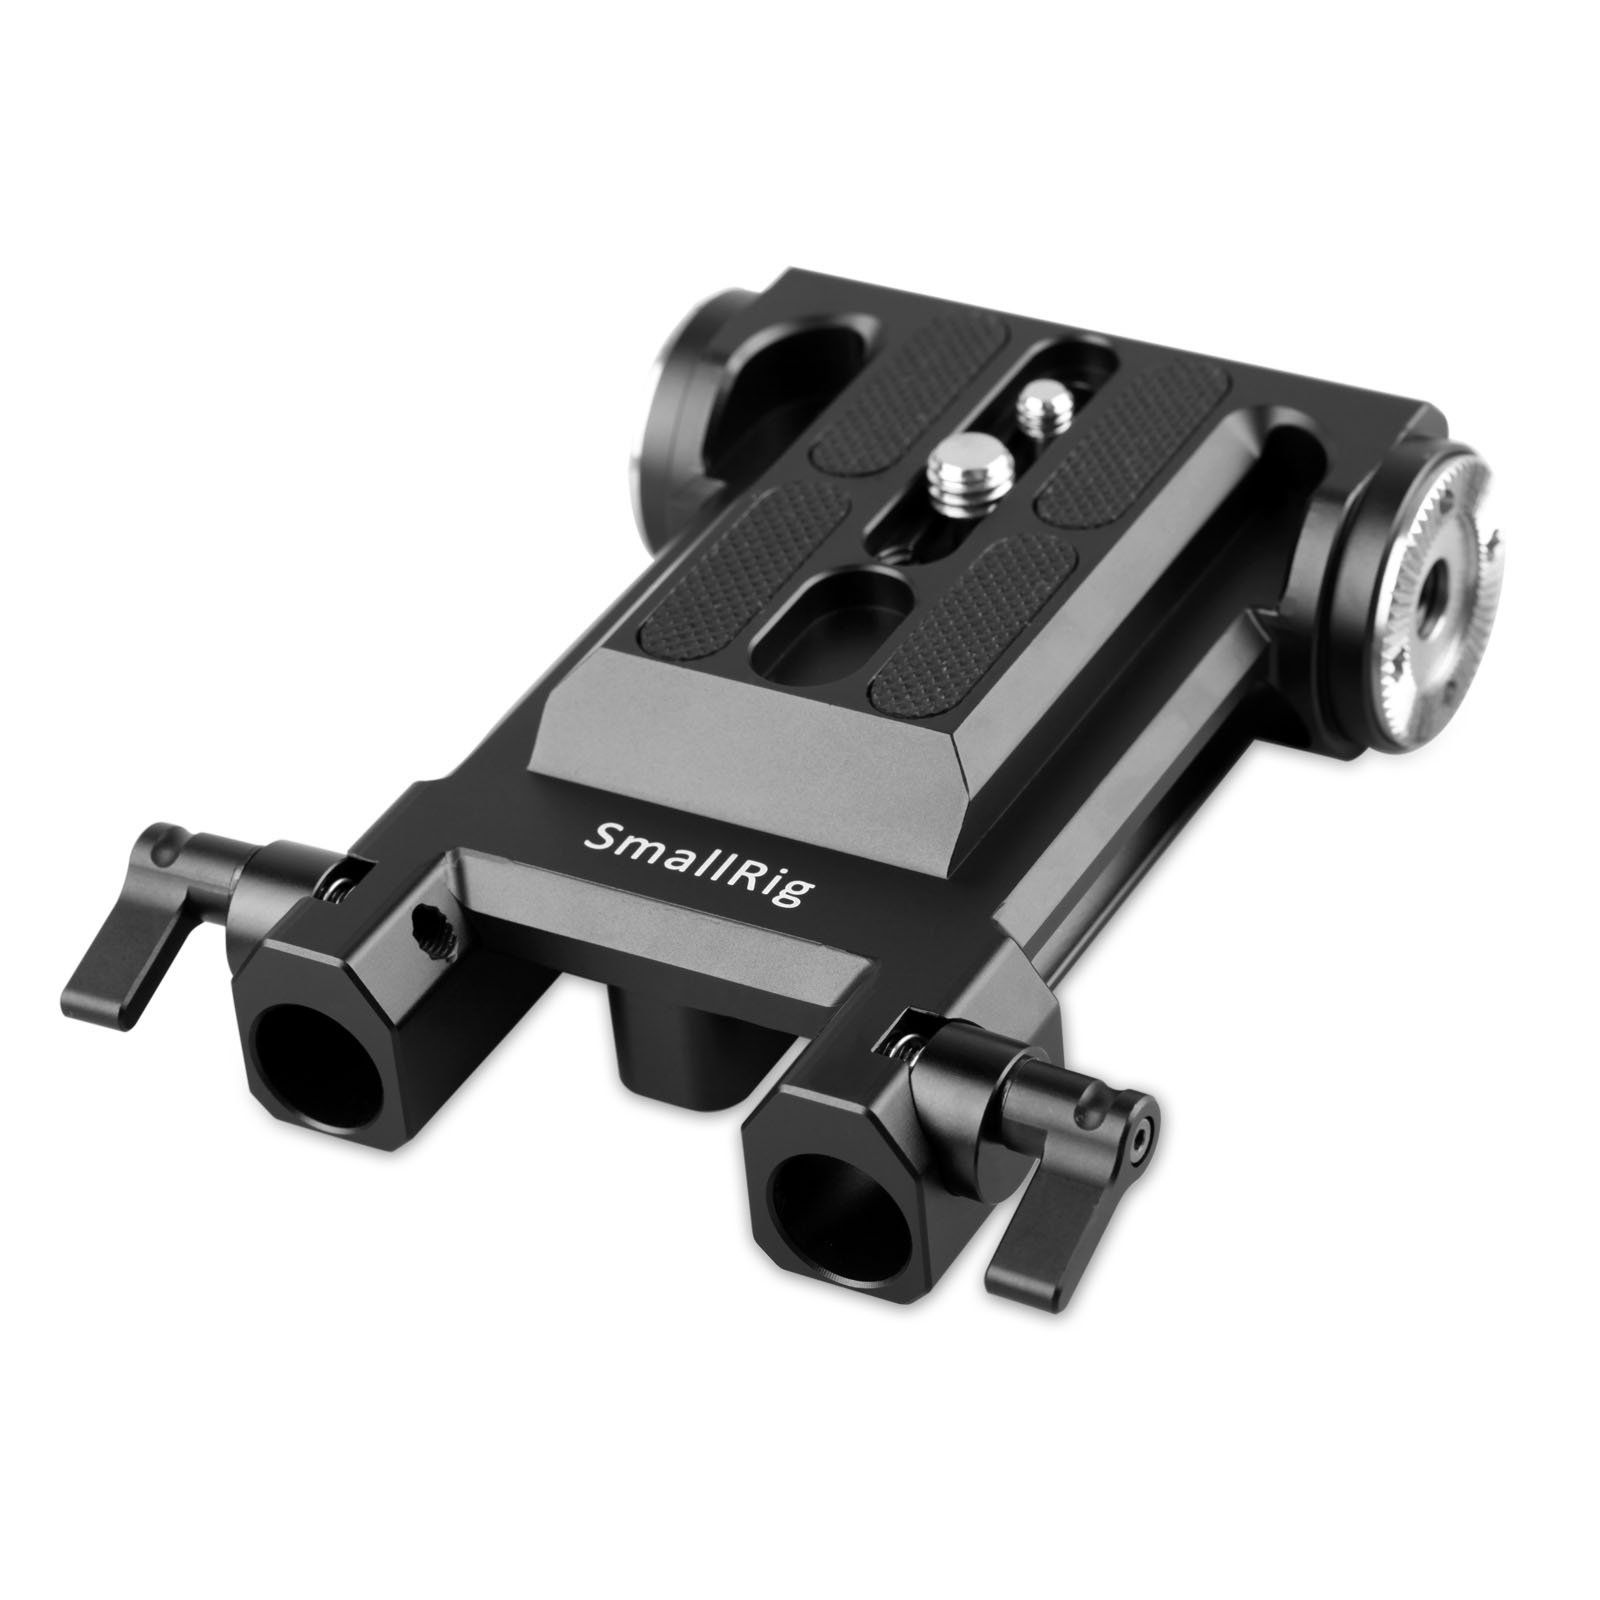 SMALLRIG Baseplate Bottom Plate for Sony FS5 / Panasonic EVA1 with Two Rosettes on Both Sides - 1827